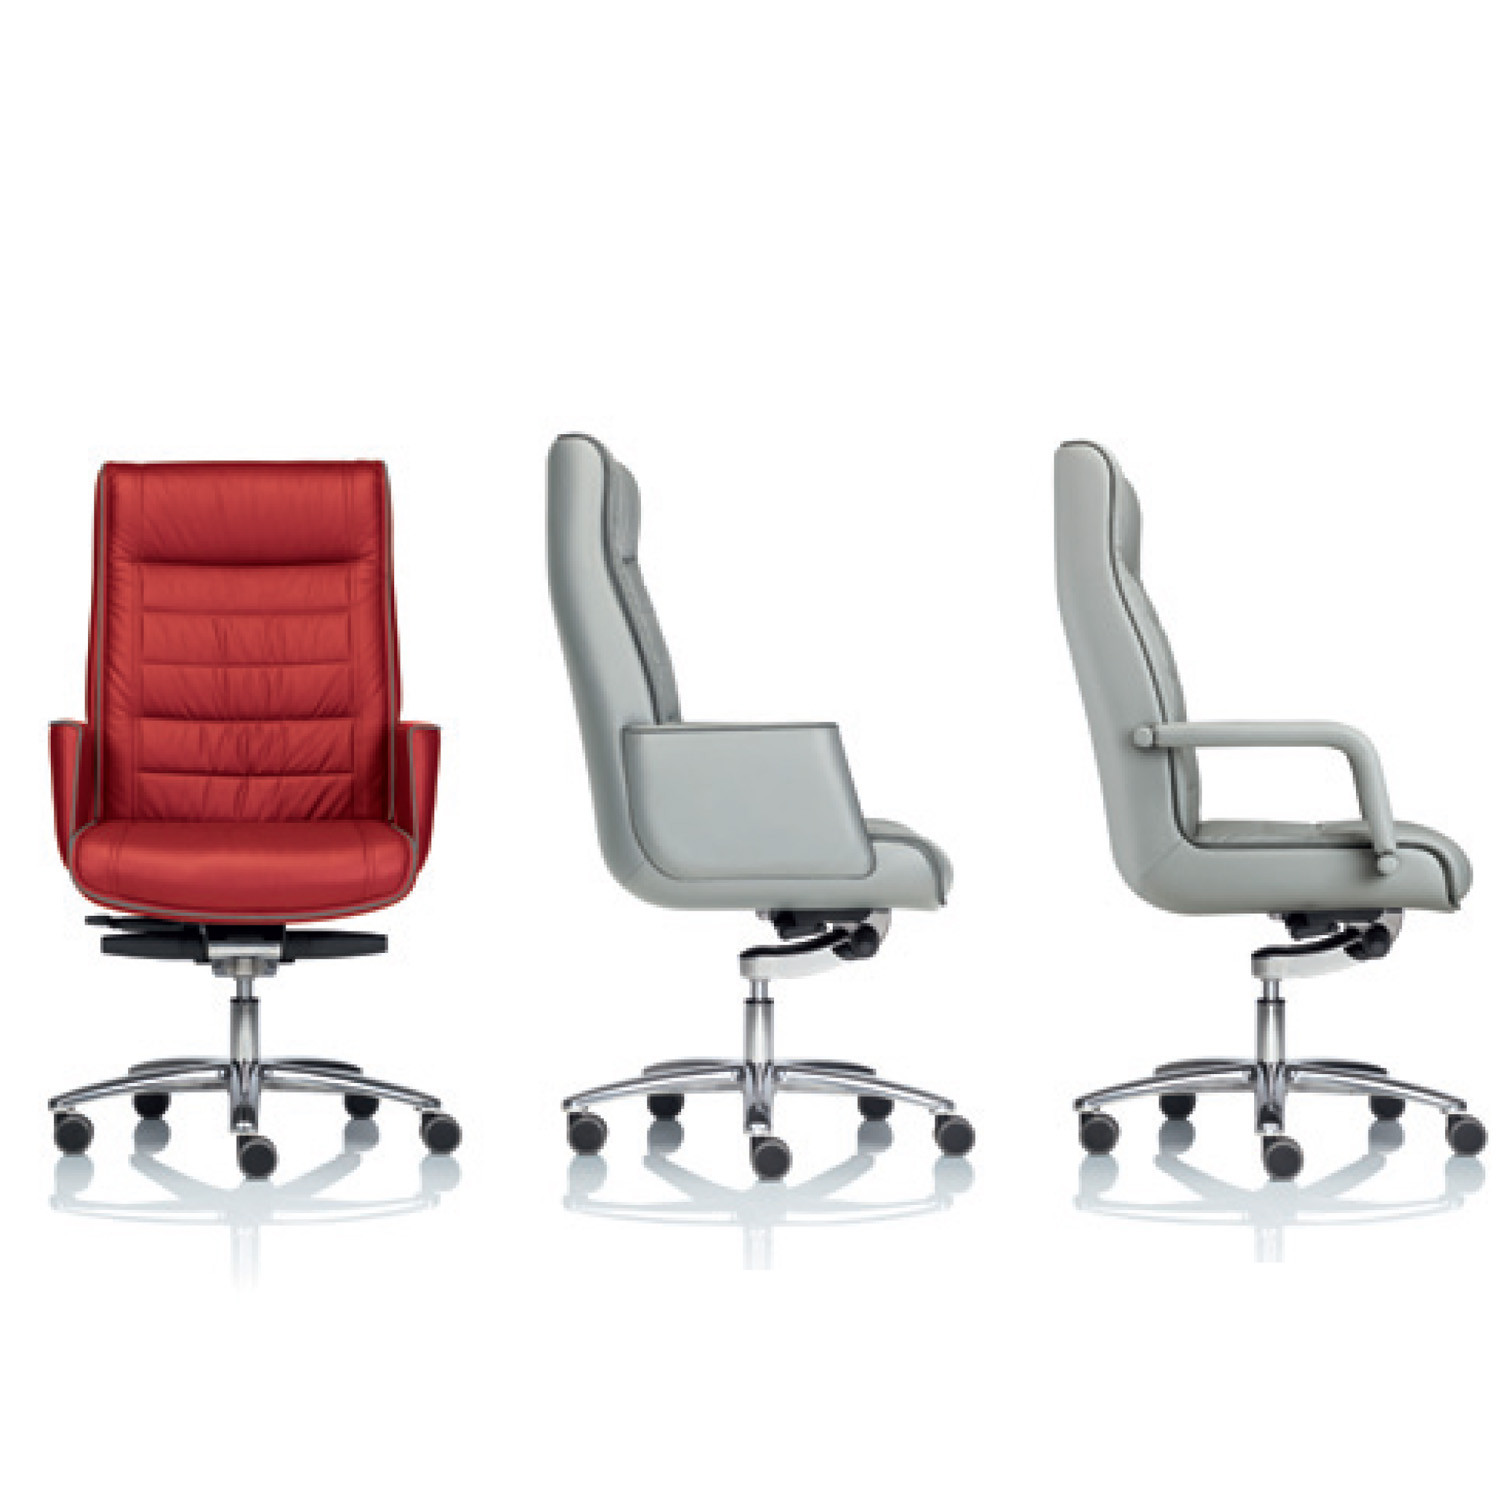 Marvelous Mr Big Executive Chairs